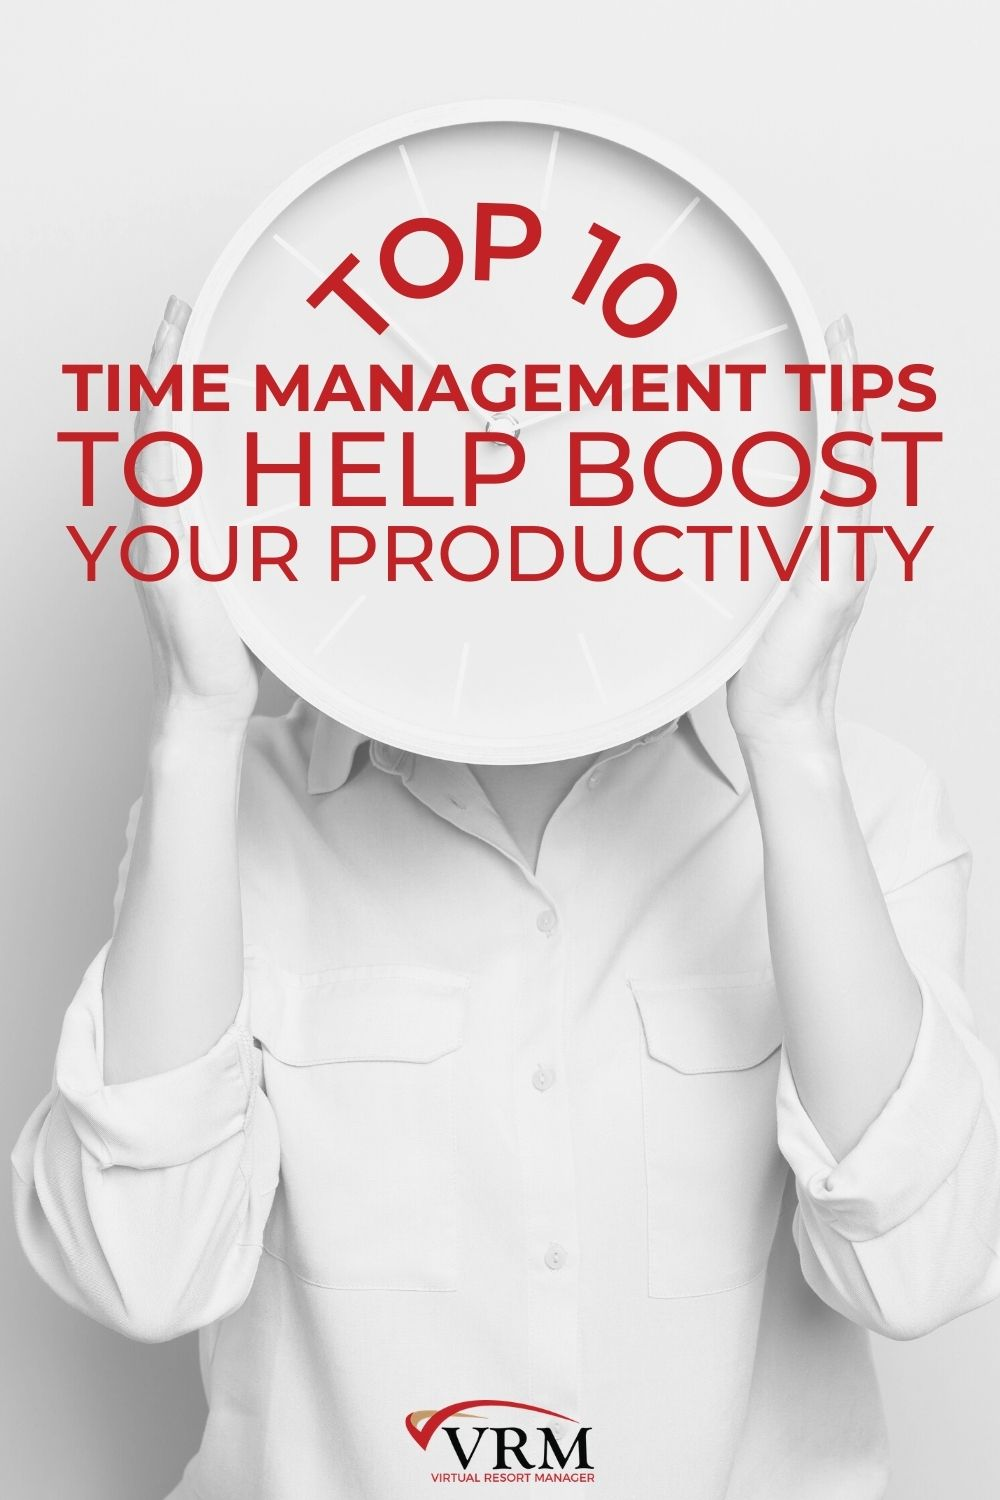 Top 10 Time Management Tips to Help Boost Your Productivity